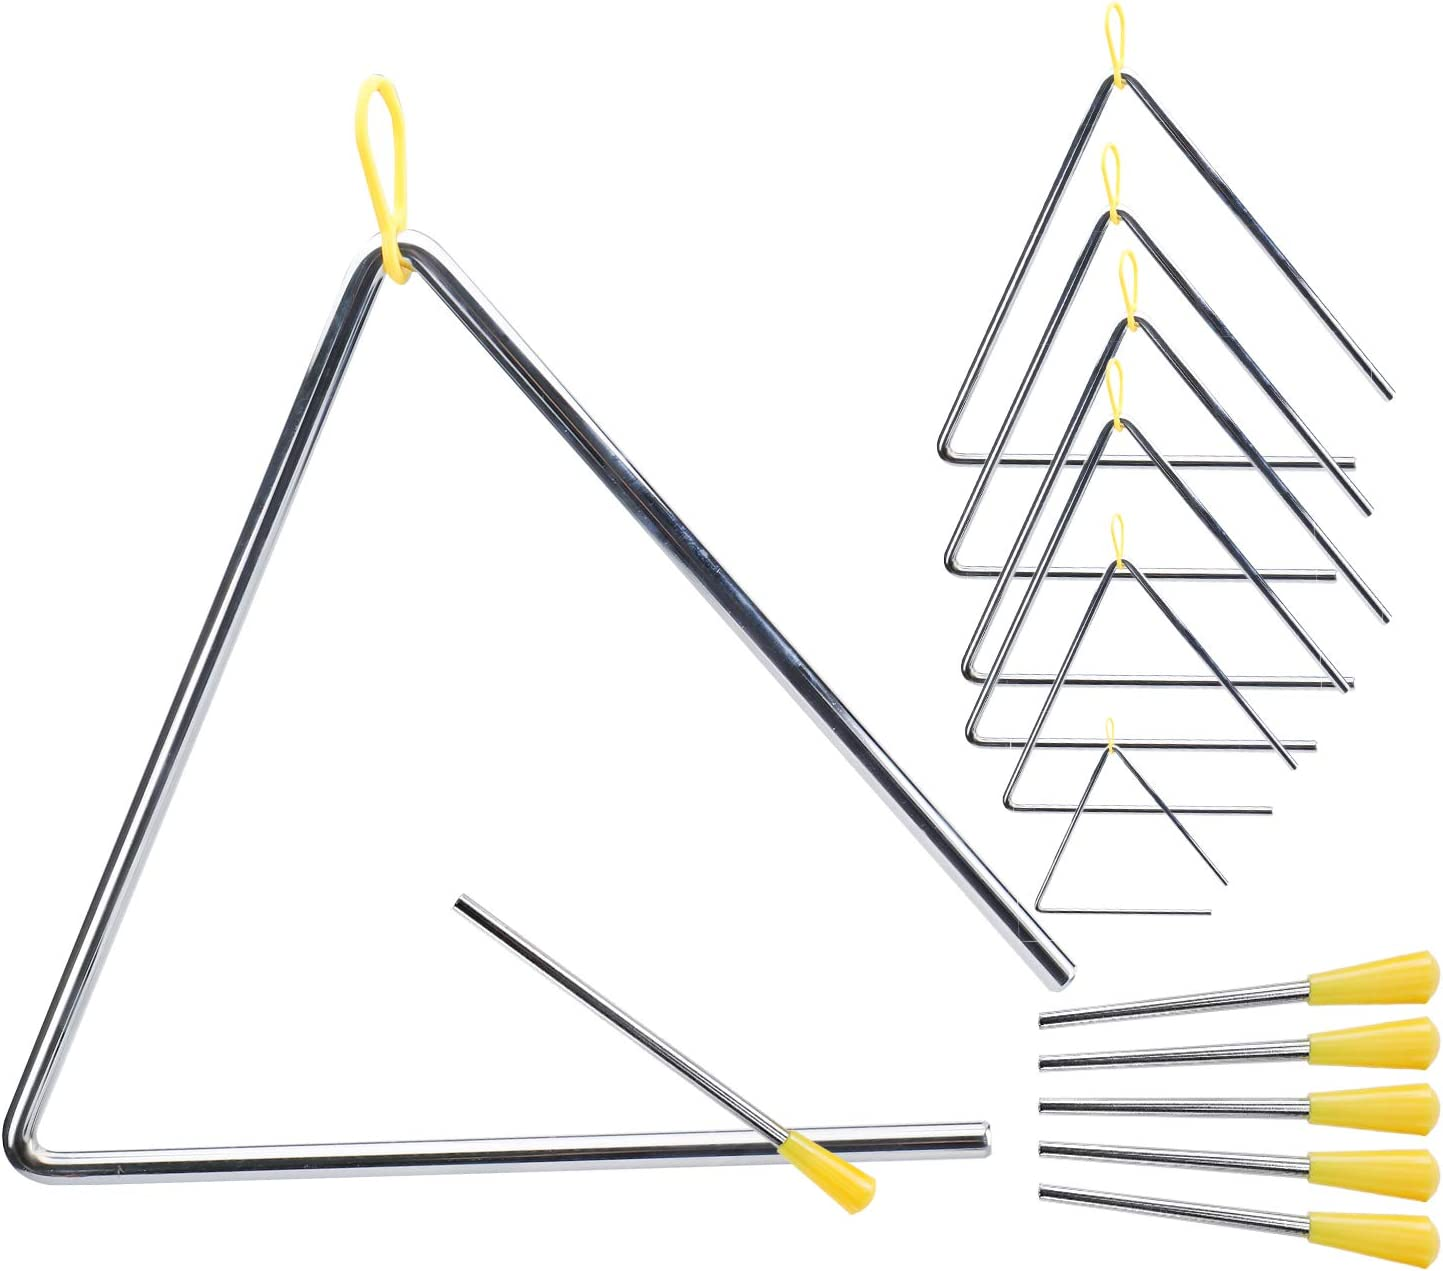 Patioer Our shop most popular 6 Pack Triangle Instrument Set 4